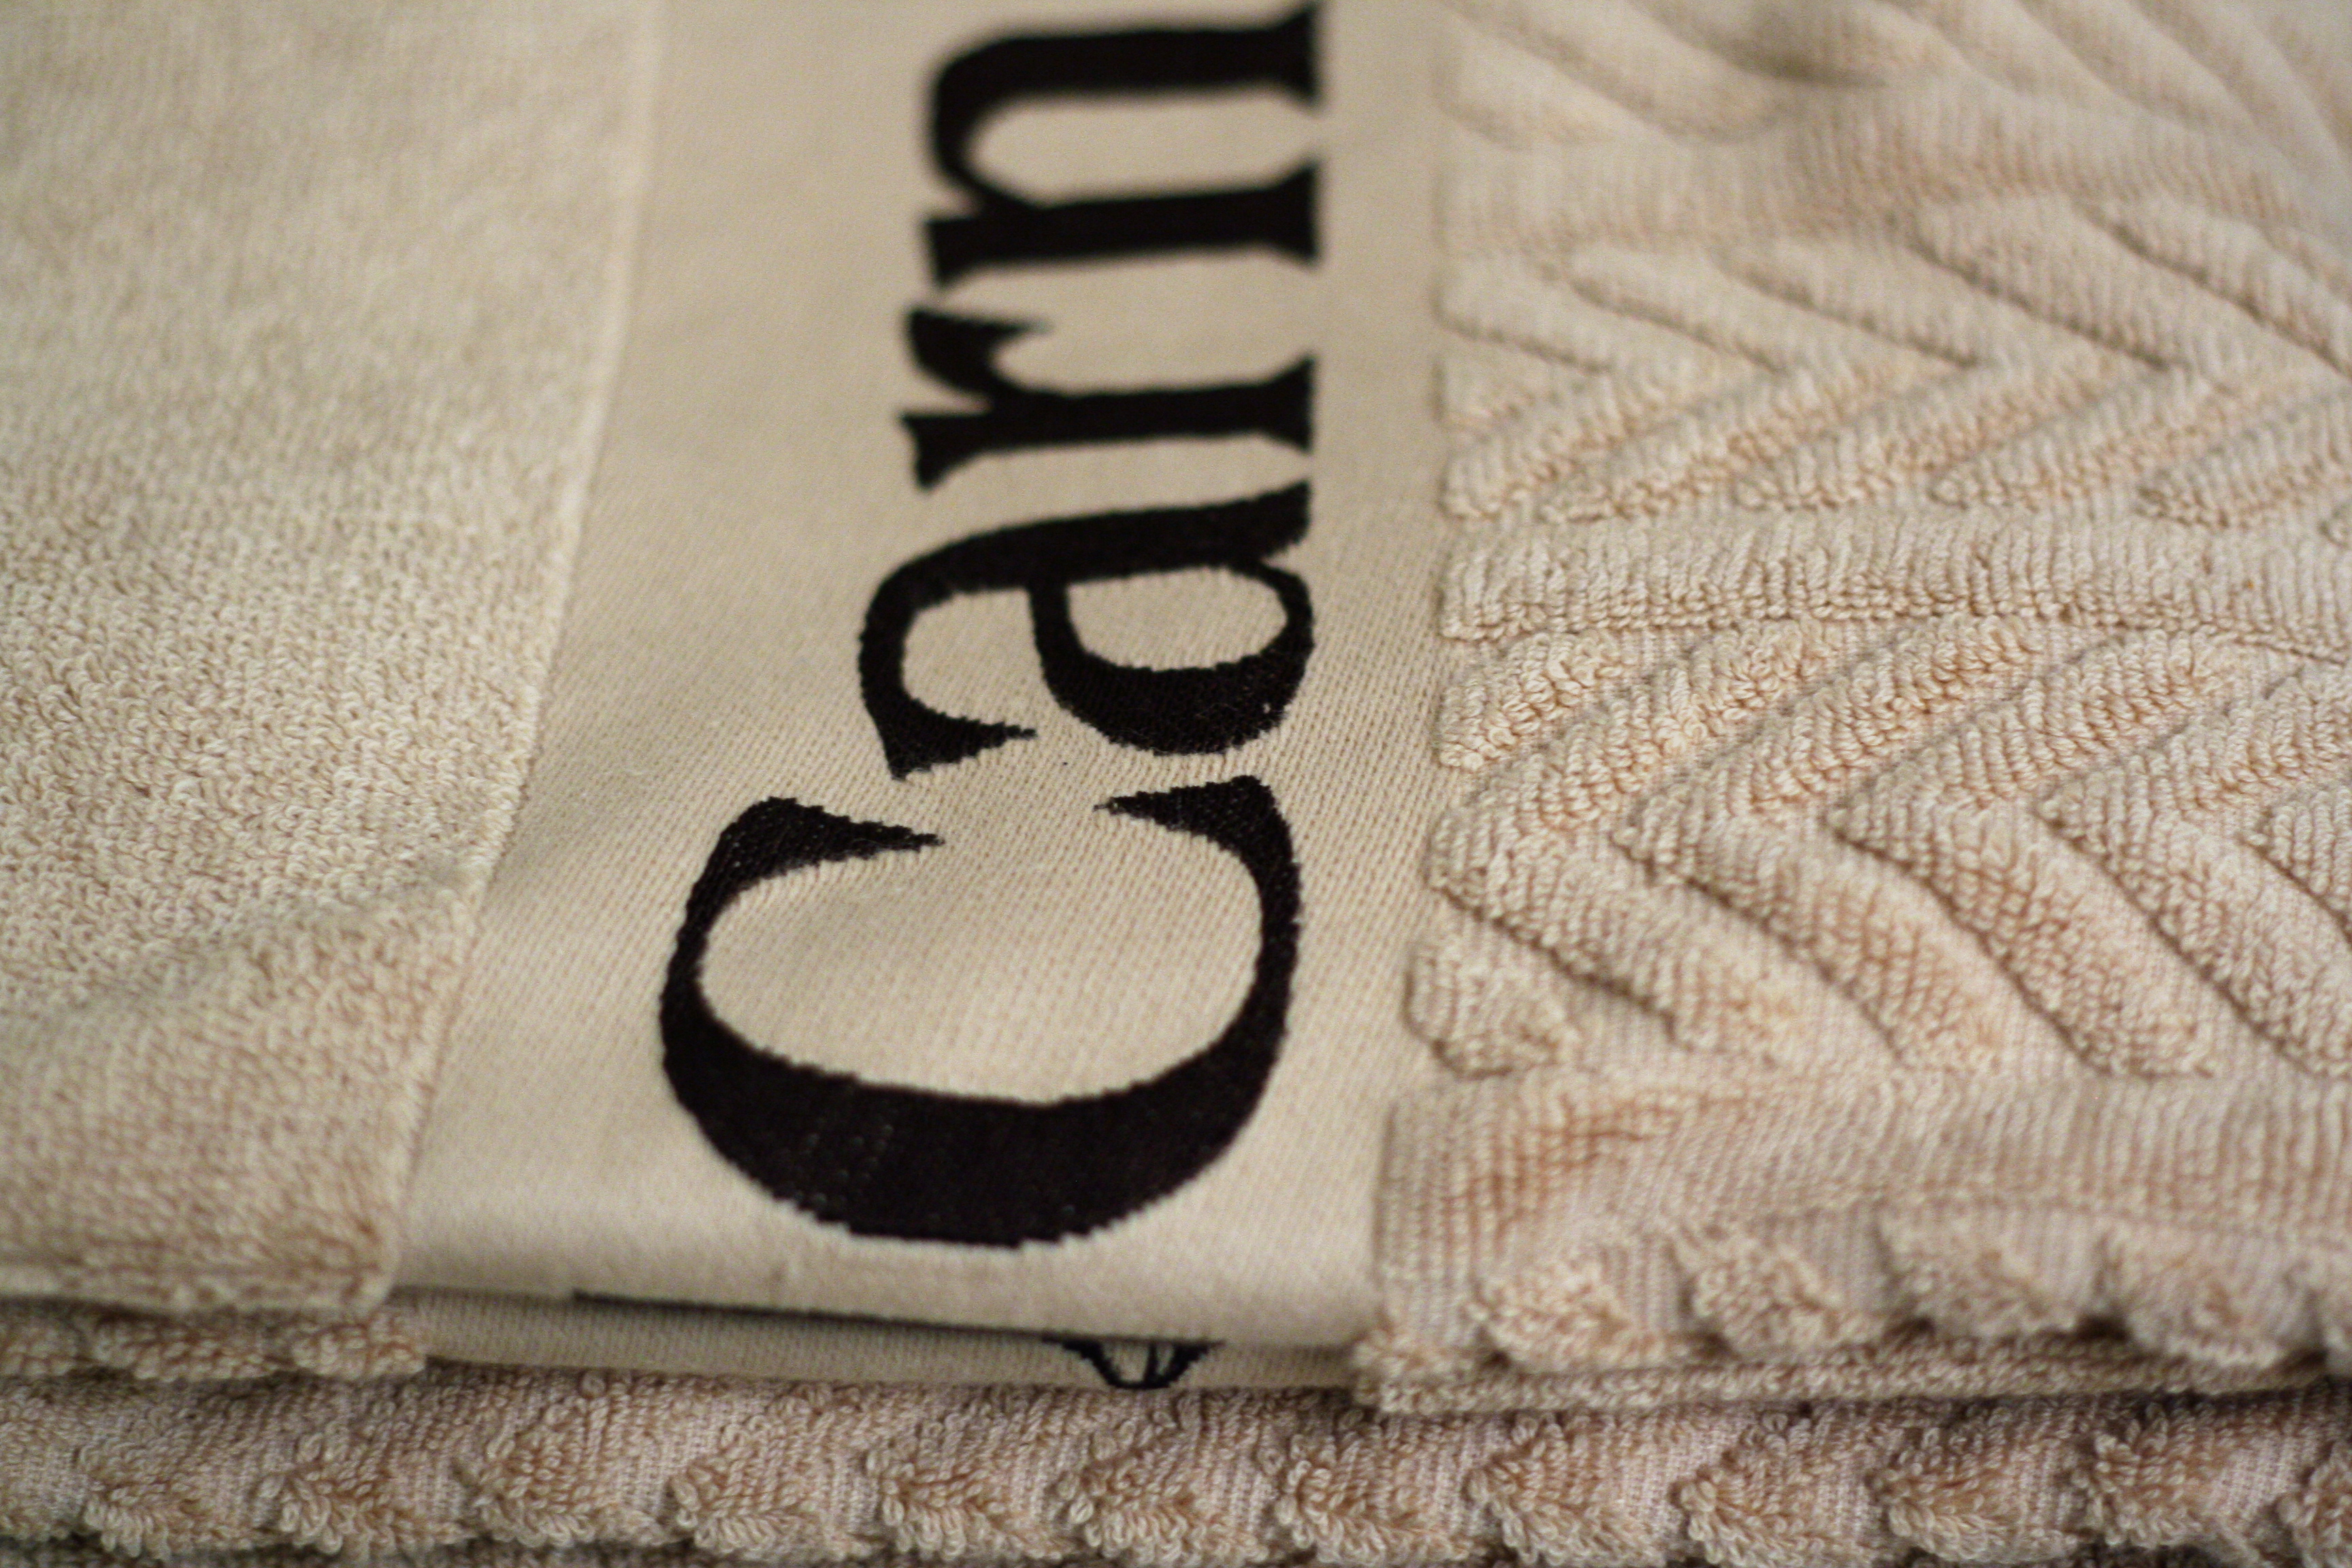 Woven border towel with relief weave